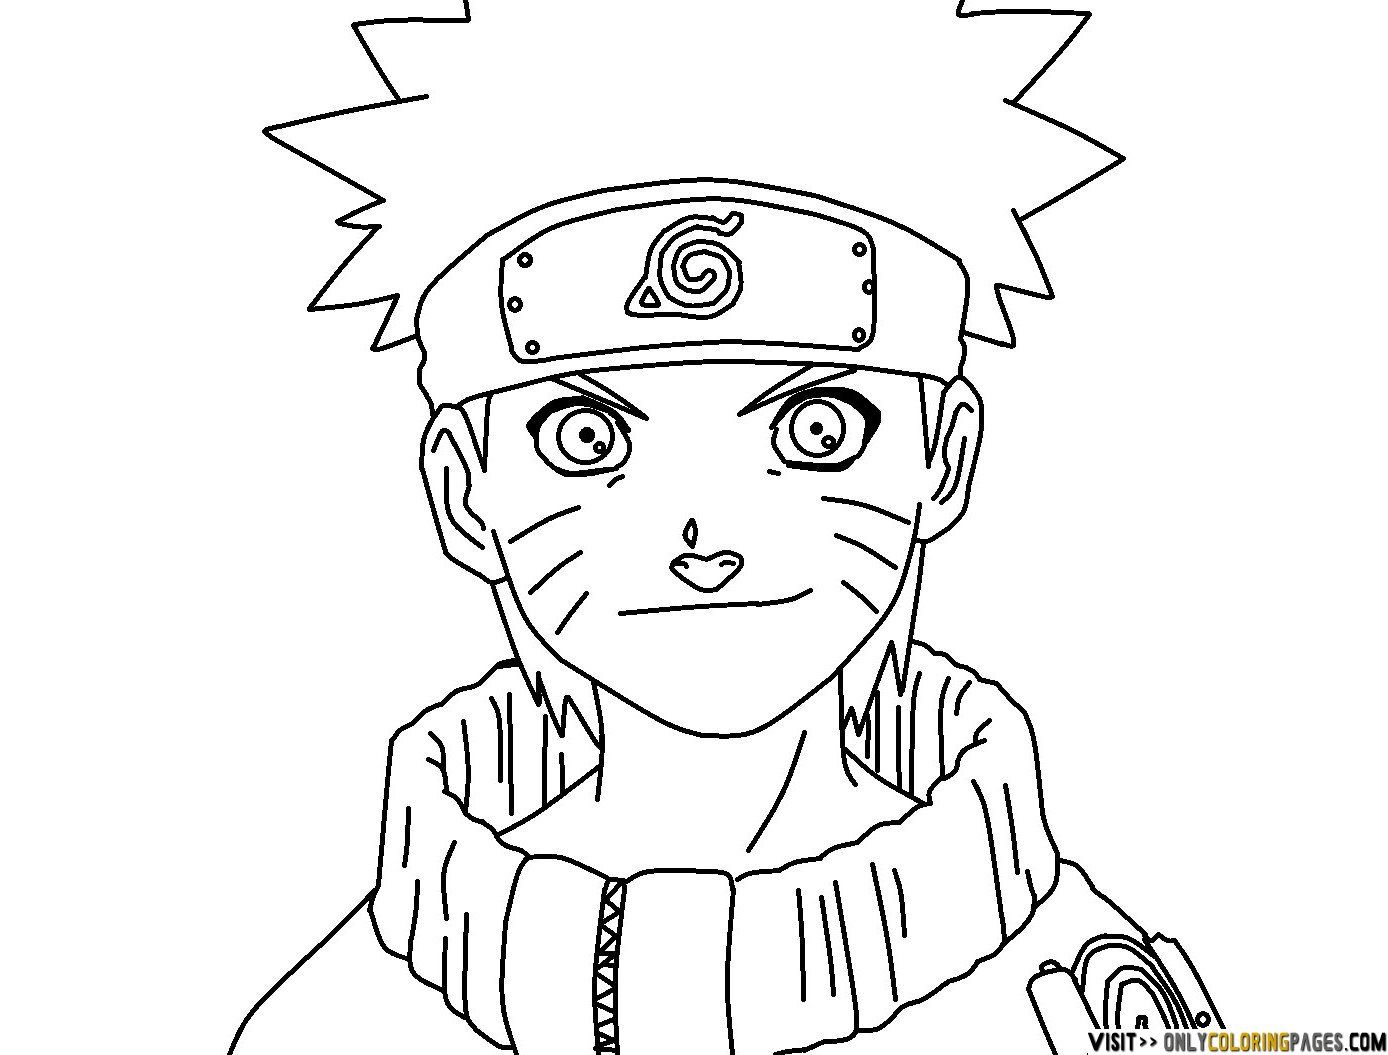 naruto coloring pages printable naruto coloring pages free naruto coloring pages online naruto - Naruto Coloring Pages